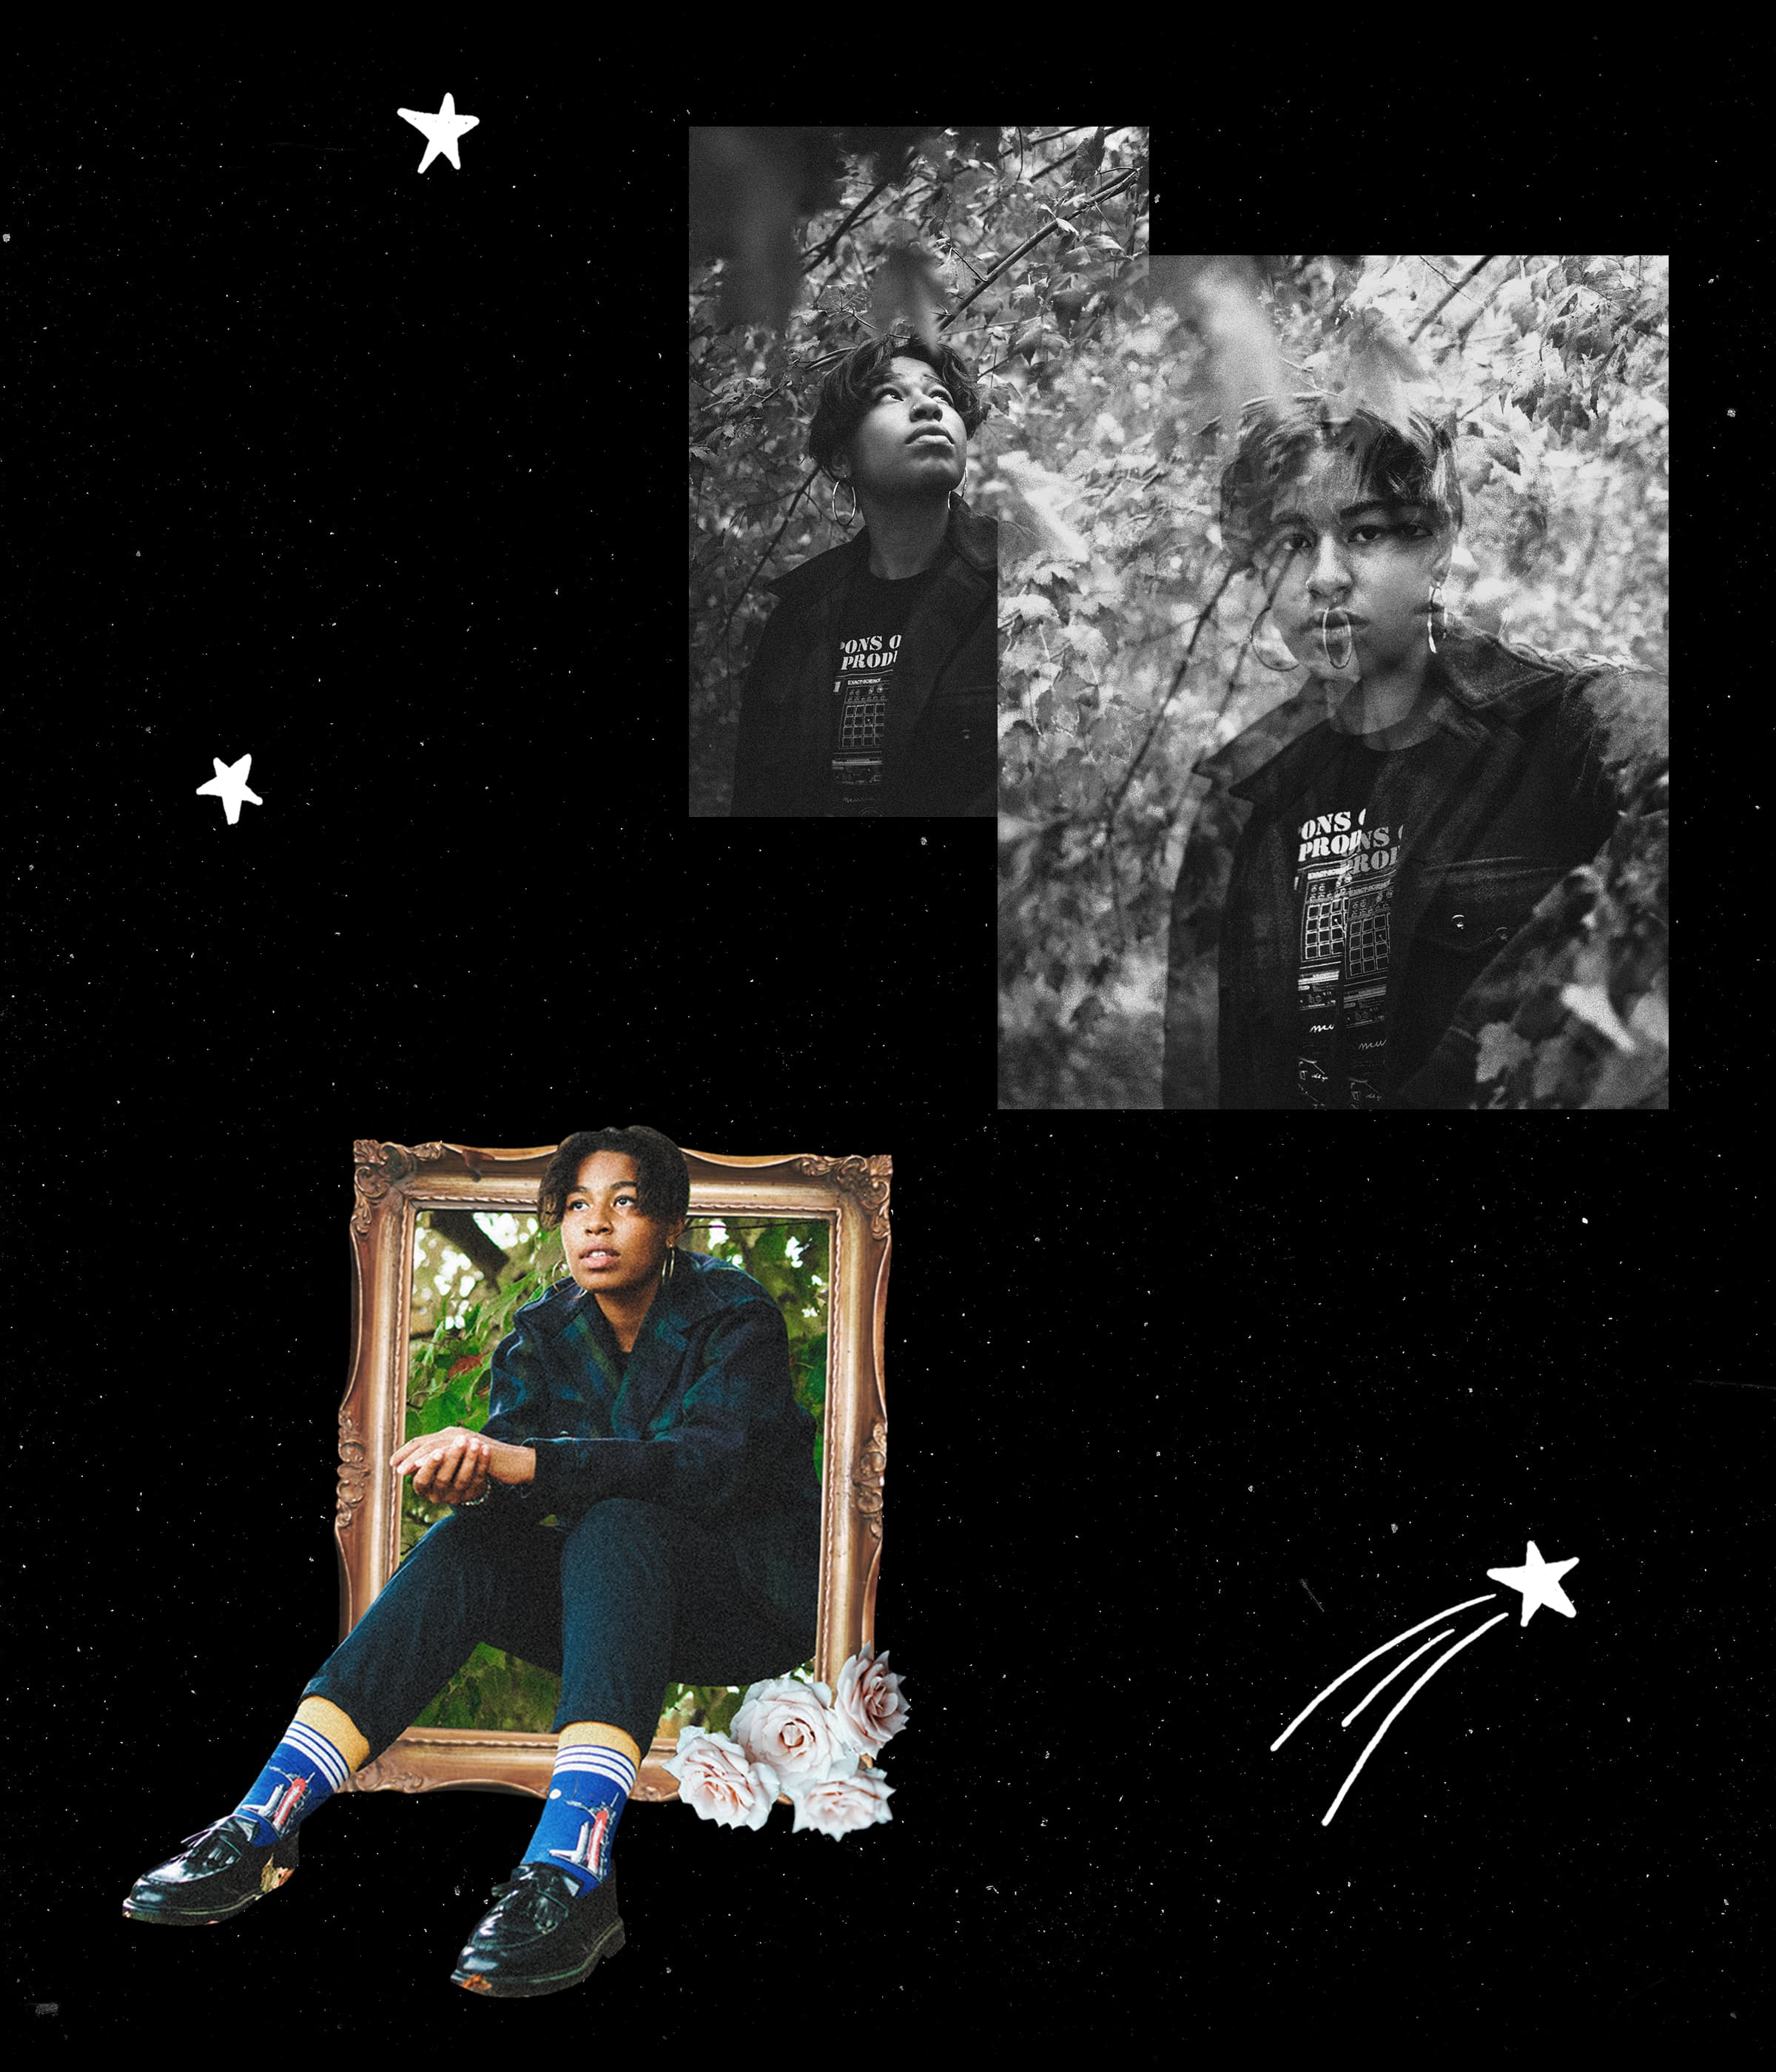 A collage of photos featuring Orion Sun sitting in a cutout frame with hand-drawn stars around her.